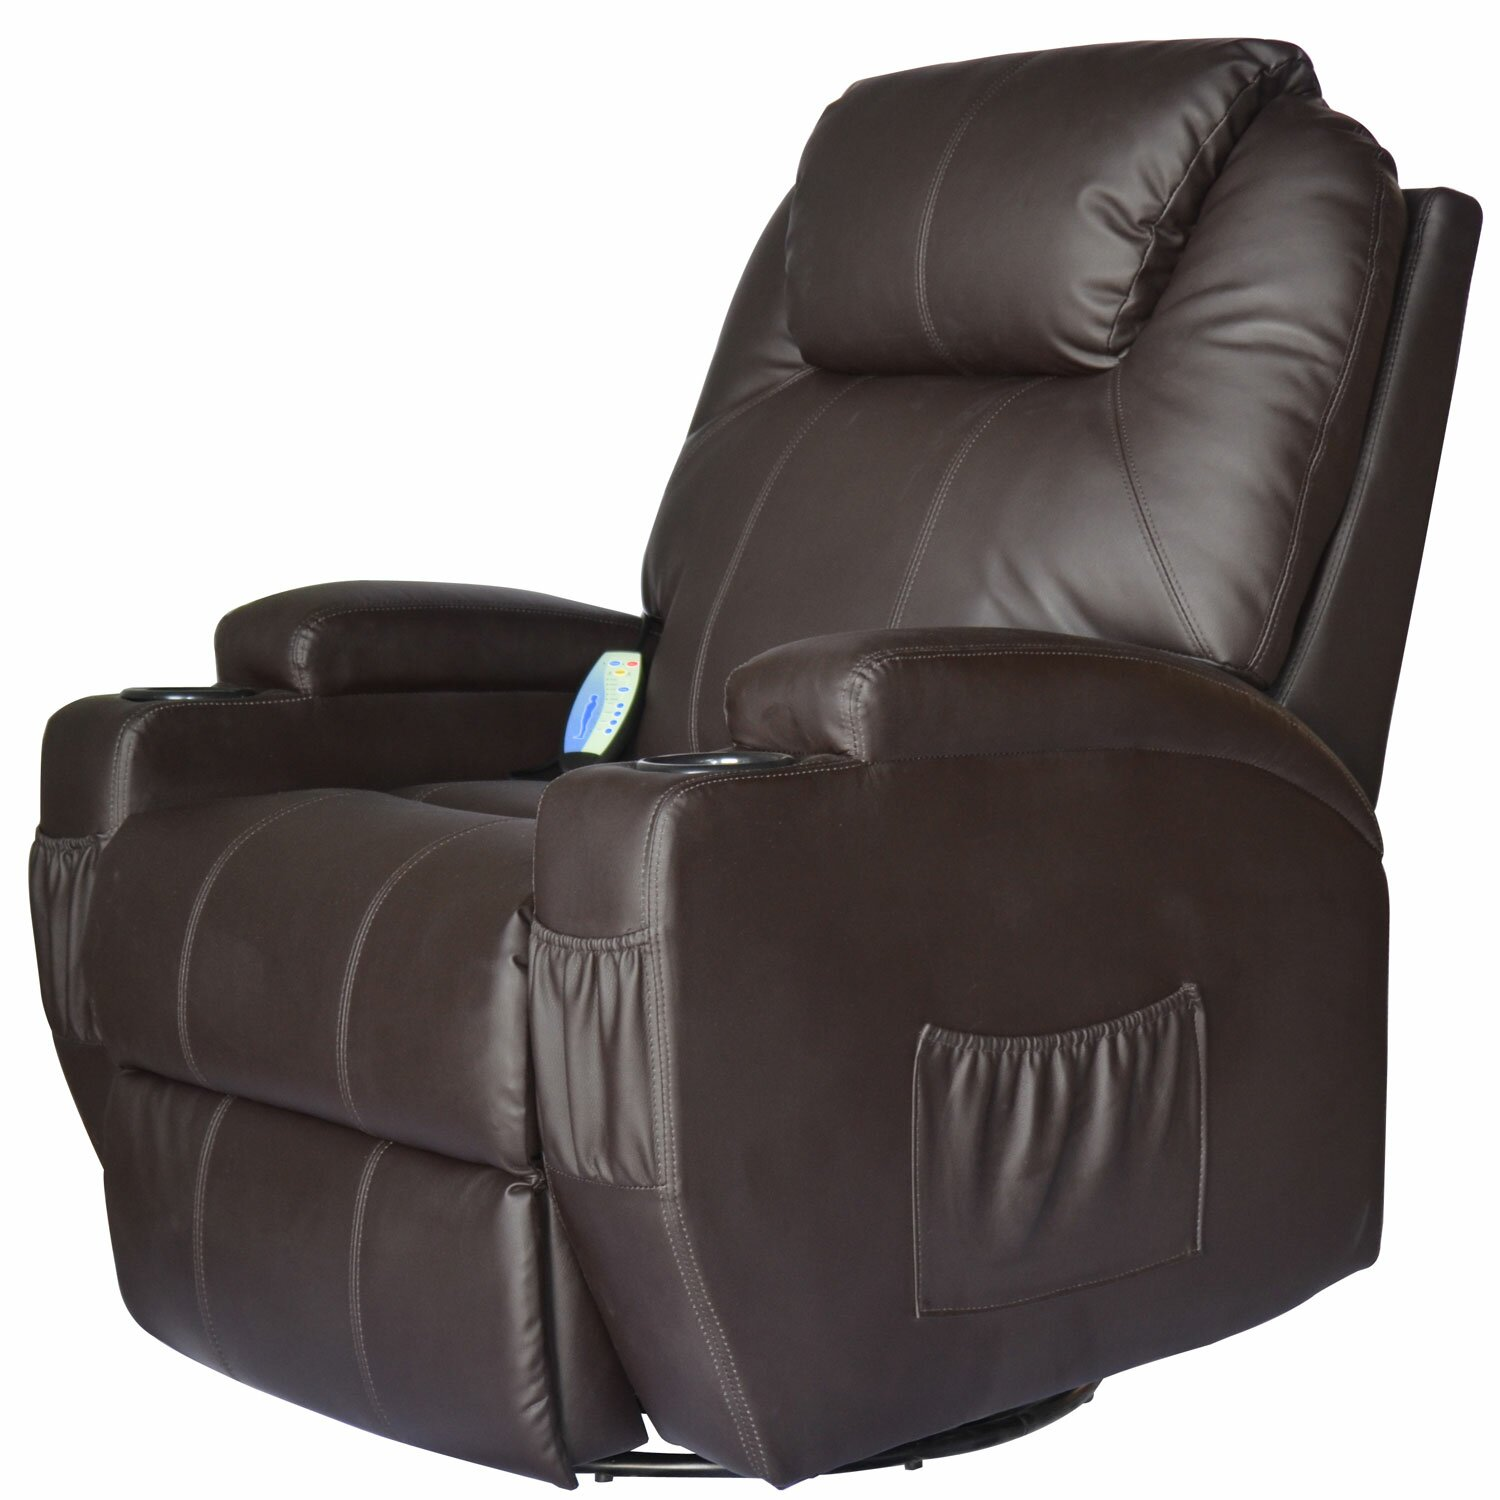 Outsunny HomCom Deluxe Heated Vibrating Vinyl Leather Massage Recliner & Reviews | Wayfair